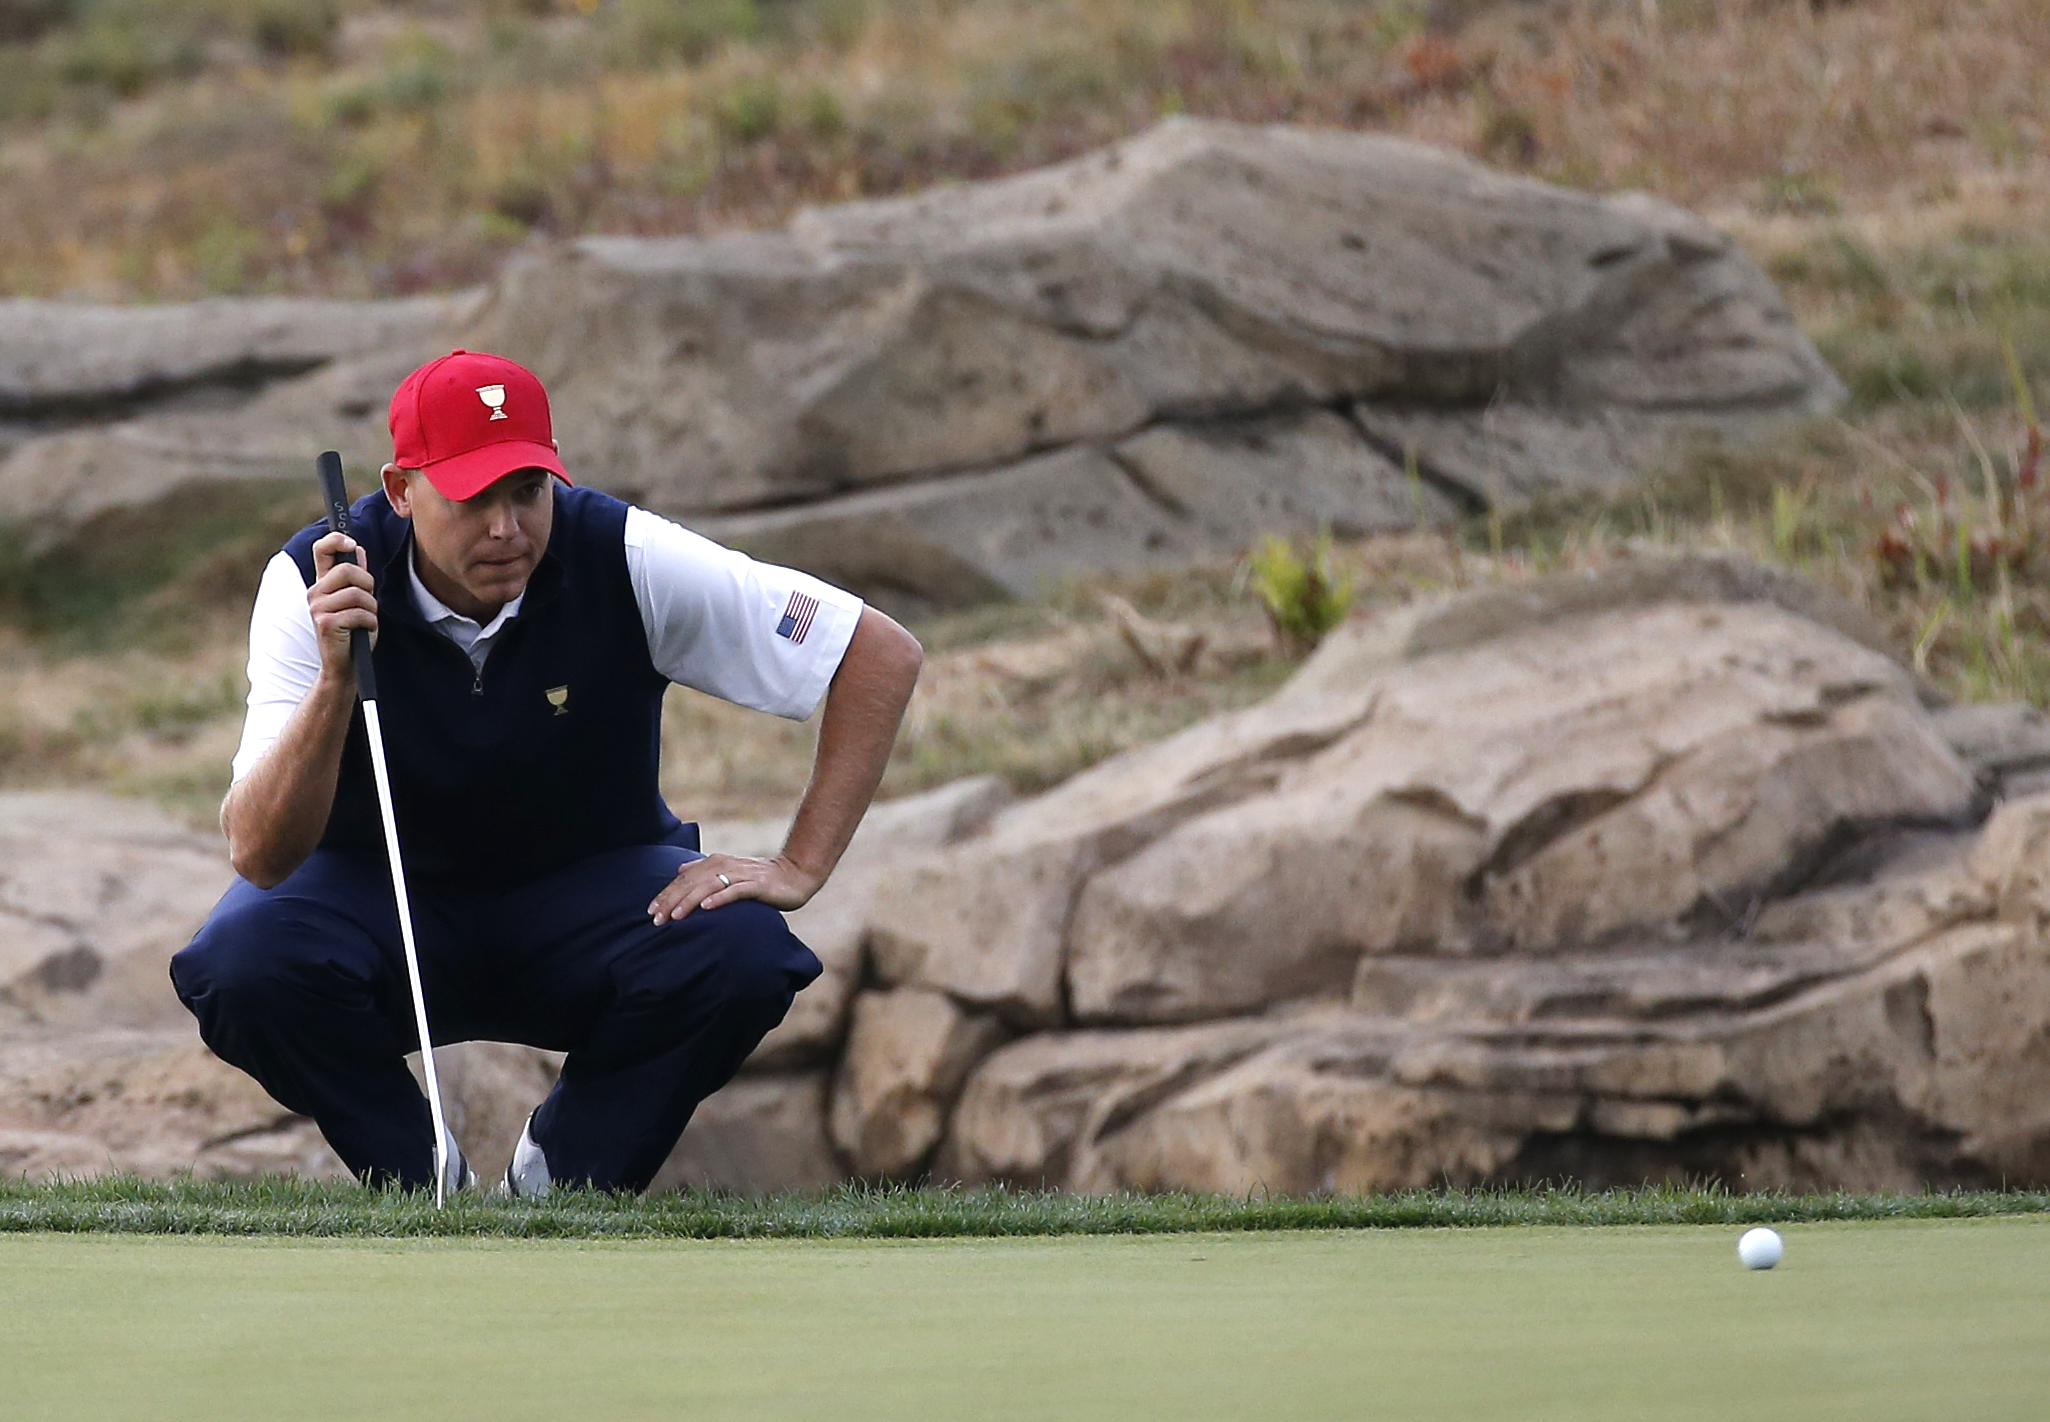 United States' Bill Haas lines up a putt on the fourth green during their foursome match at the Presidents Cup golf tournament at the Jack Nicklaus Golf Club Korea, in Incheon, South Korea, Saturday, Oct. 10, 2015.(AP Photo/Lee Jin-man)